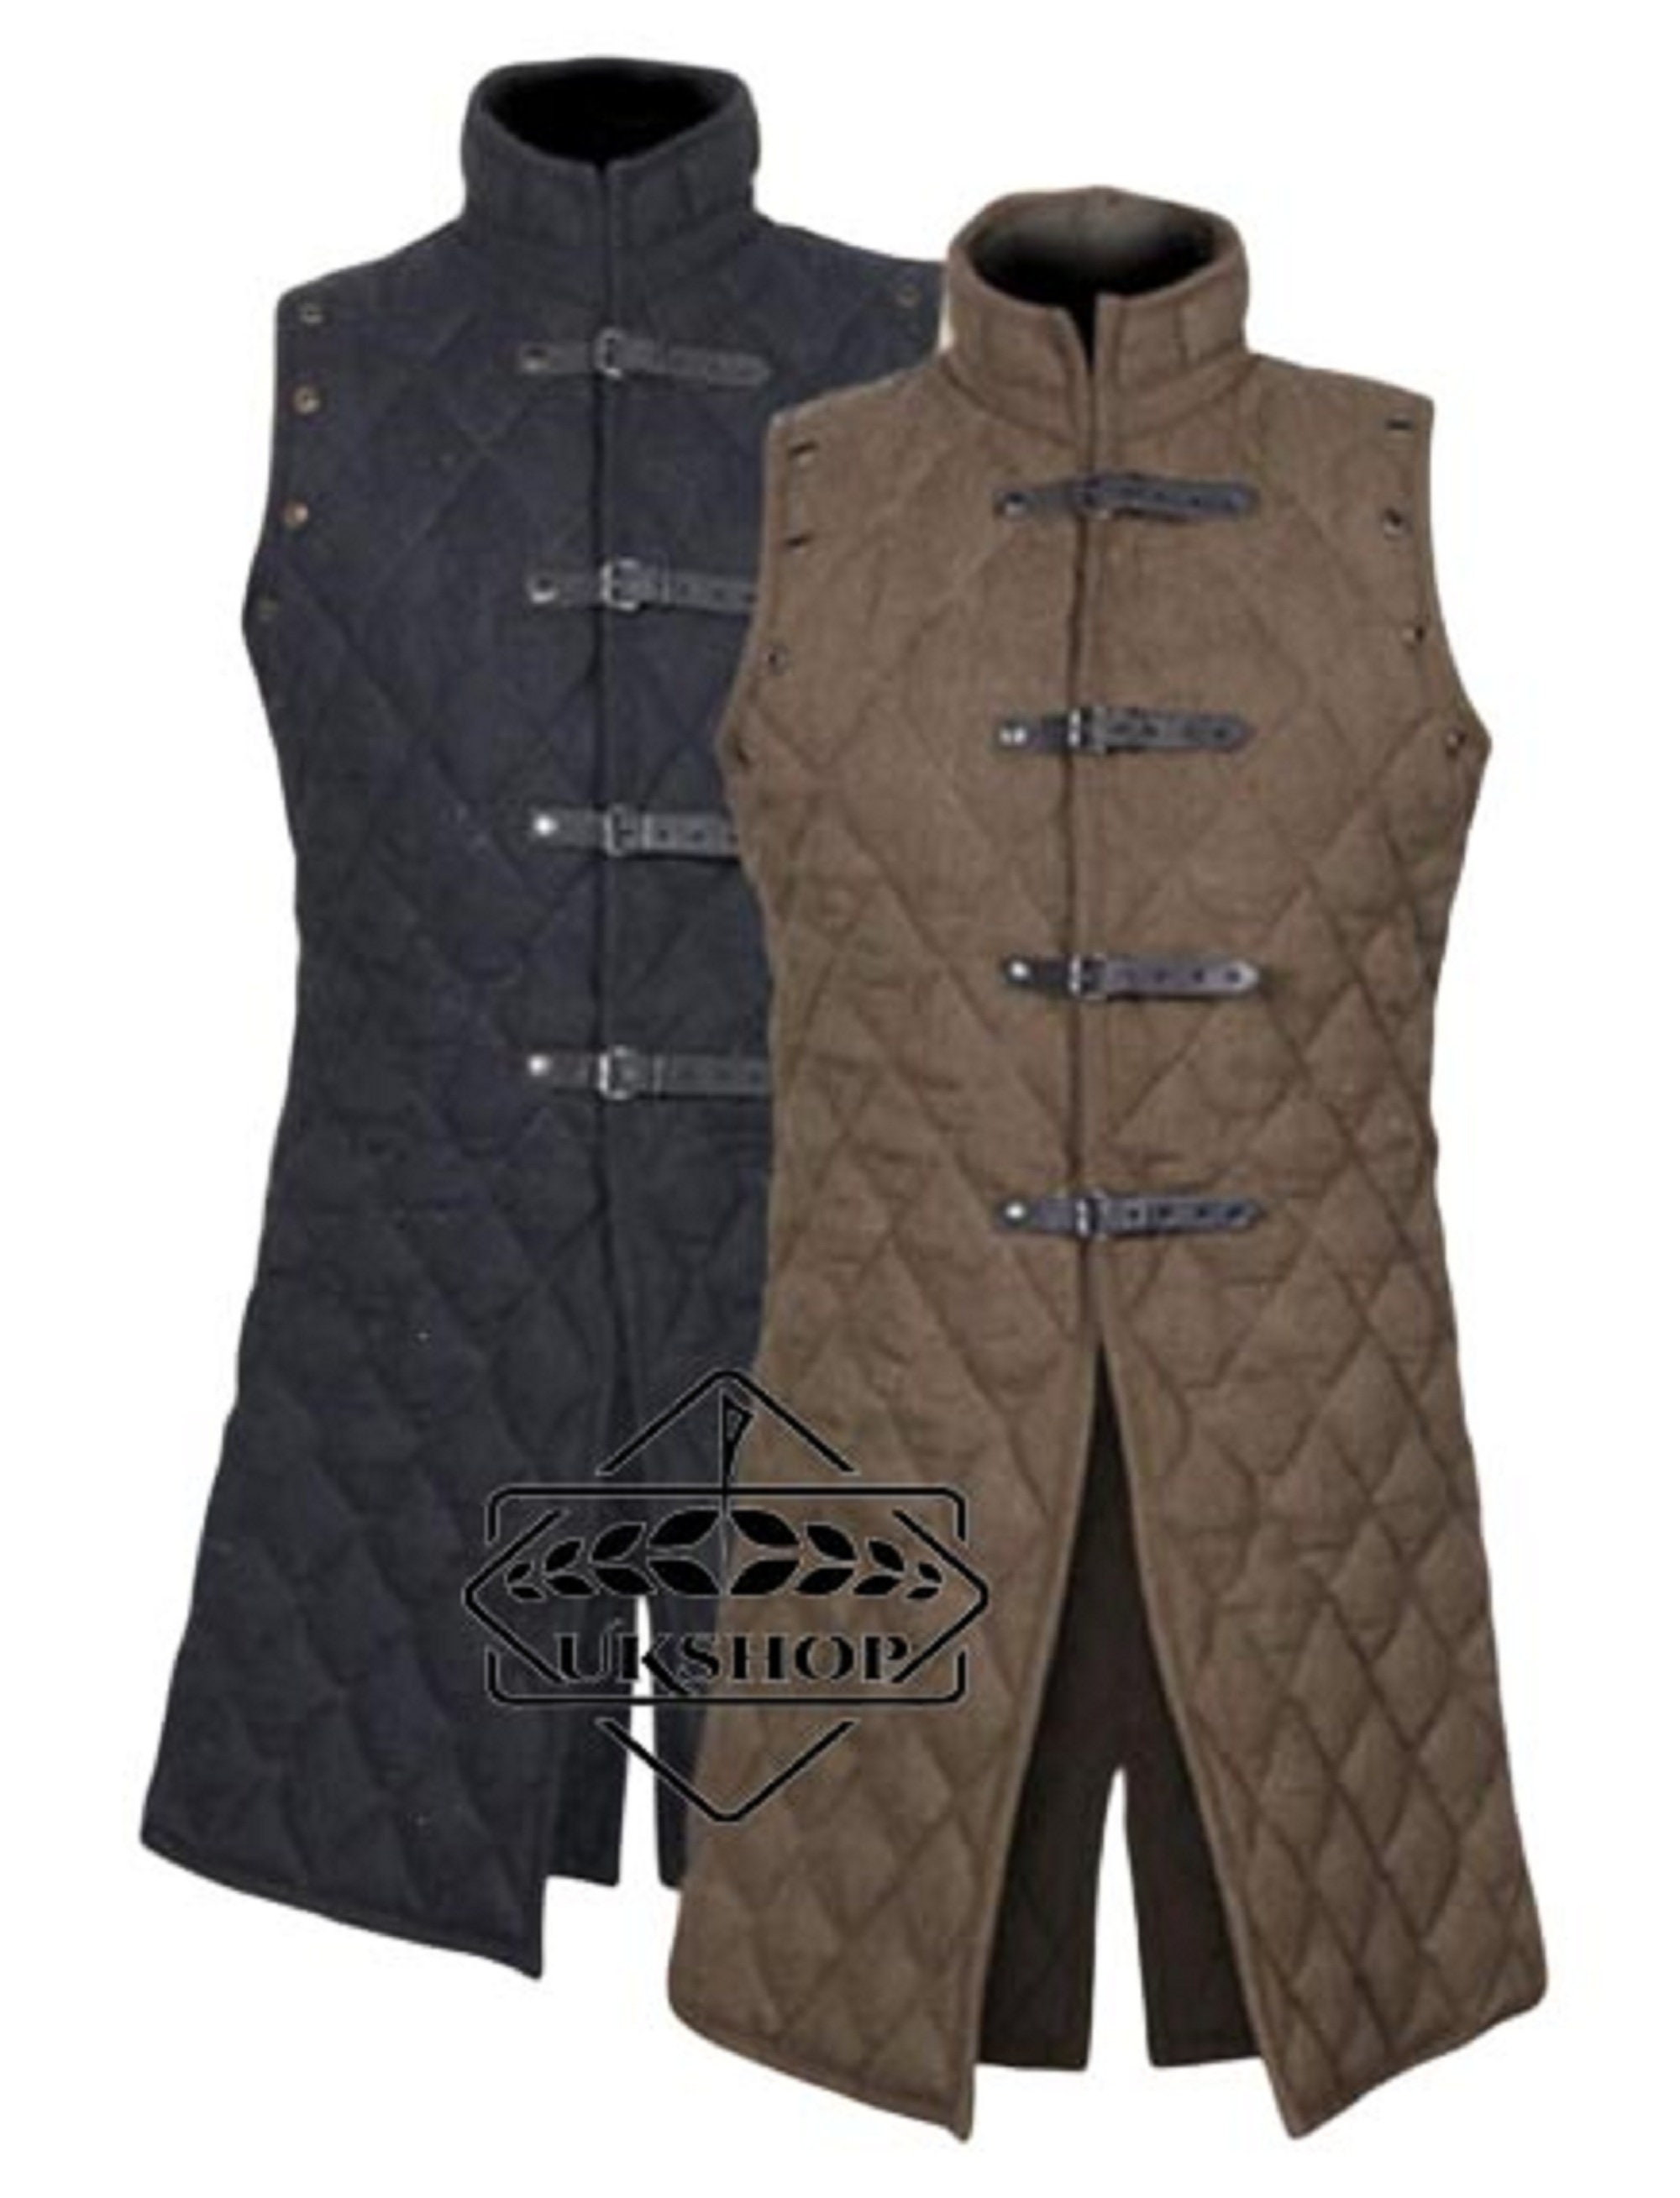 The Medieval Shop Gambeson Thick Padded Coat Aketon Jacket Armor Blue Cotton Fabrics Dress SCA